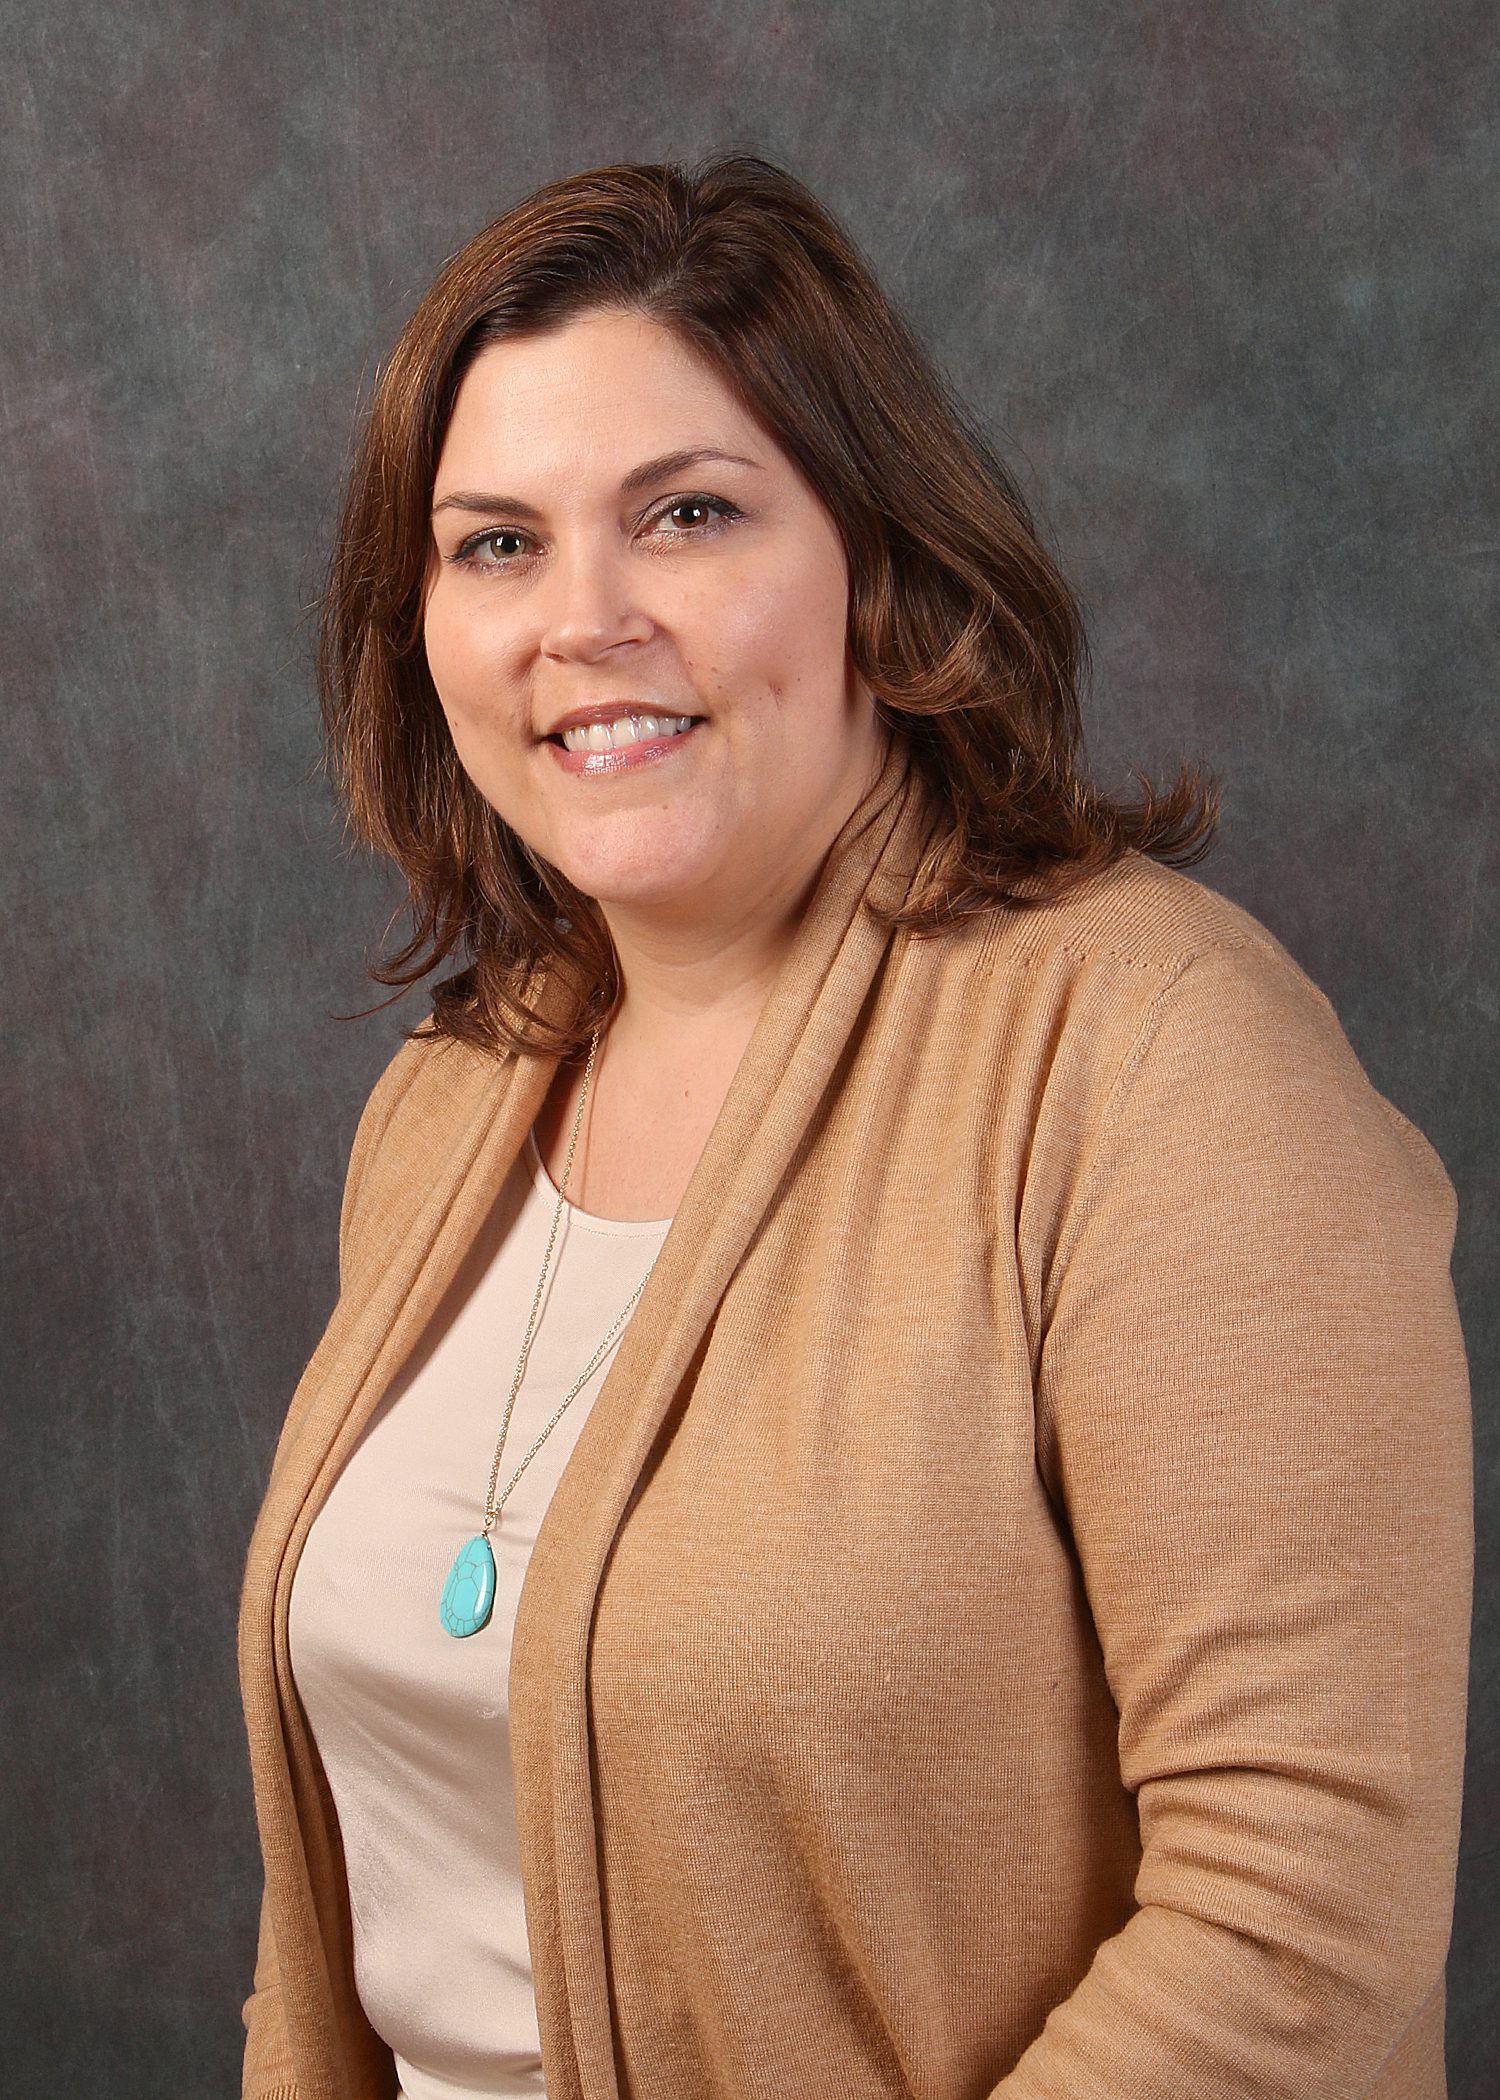 Kimberly Eros, Henny Penny Project Manager